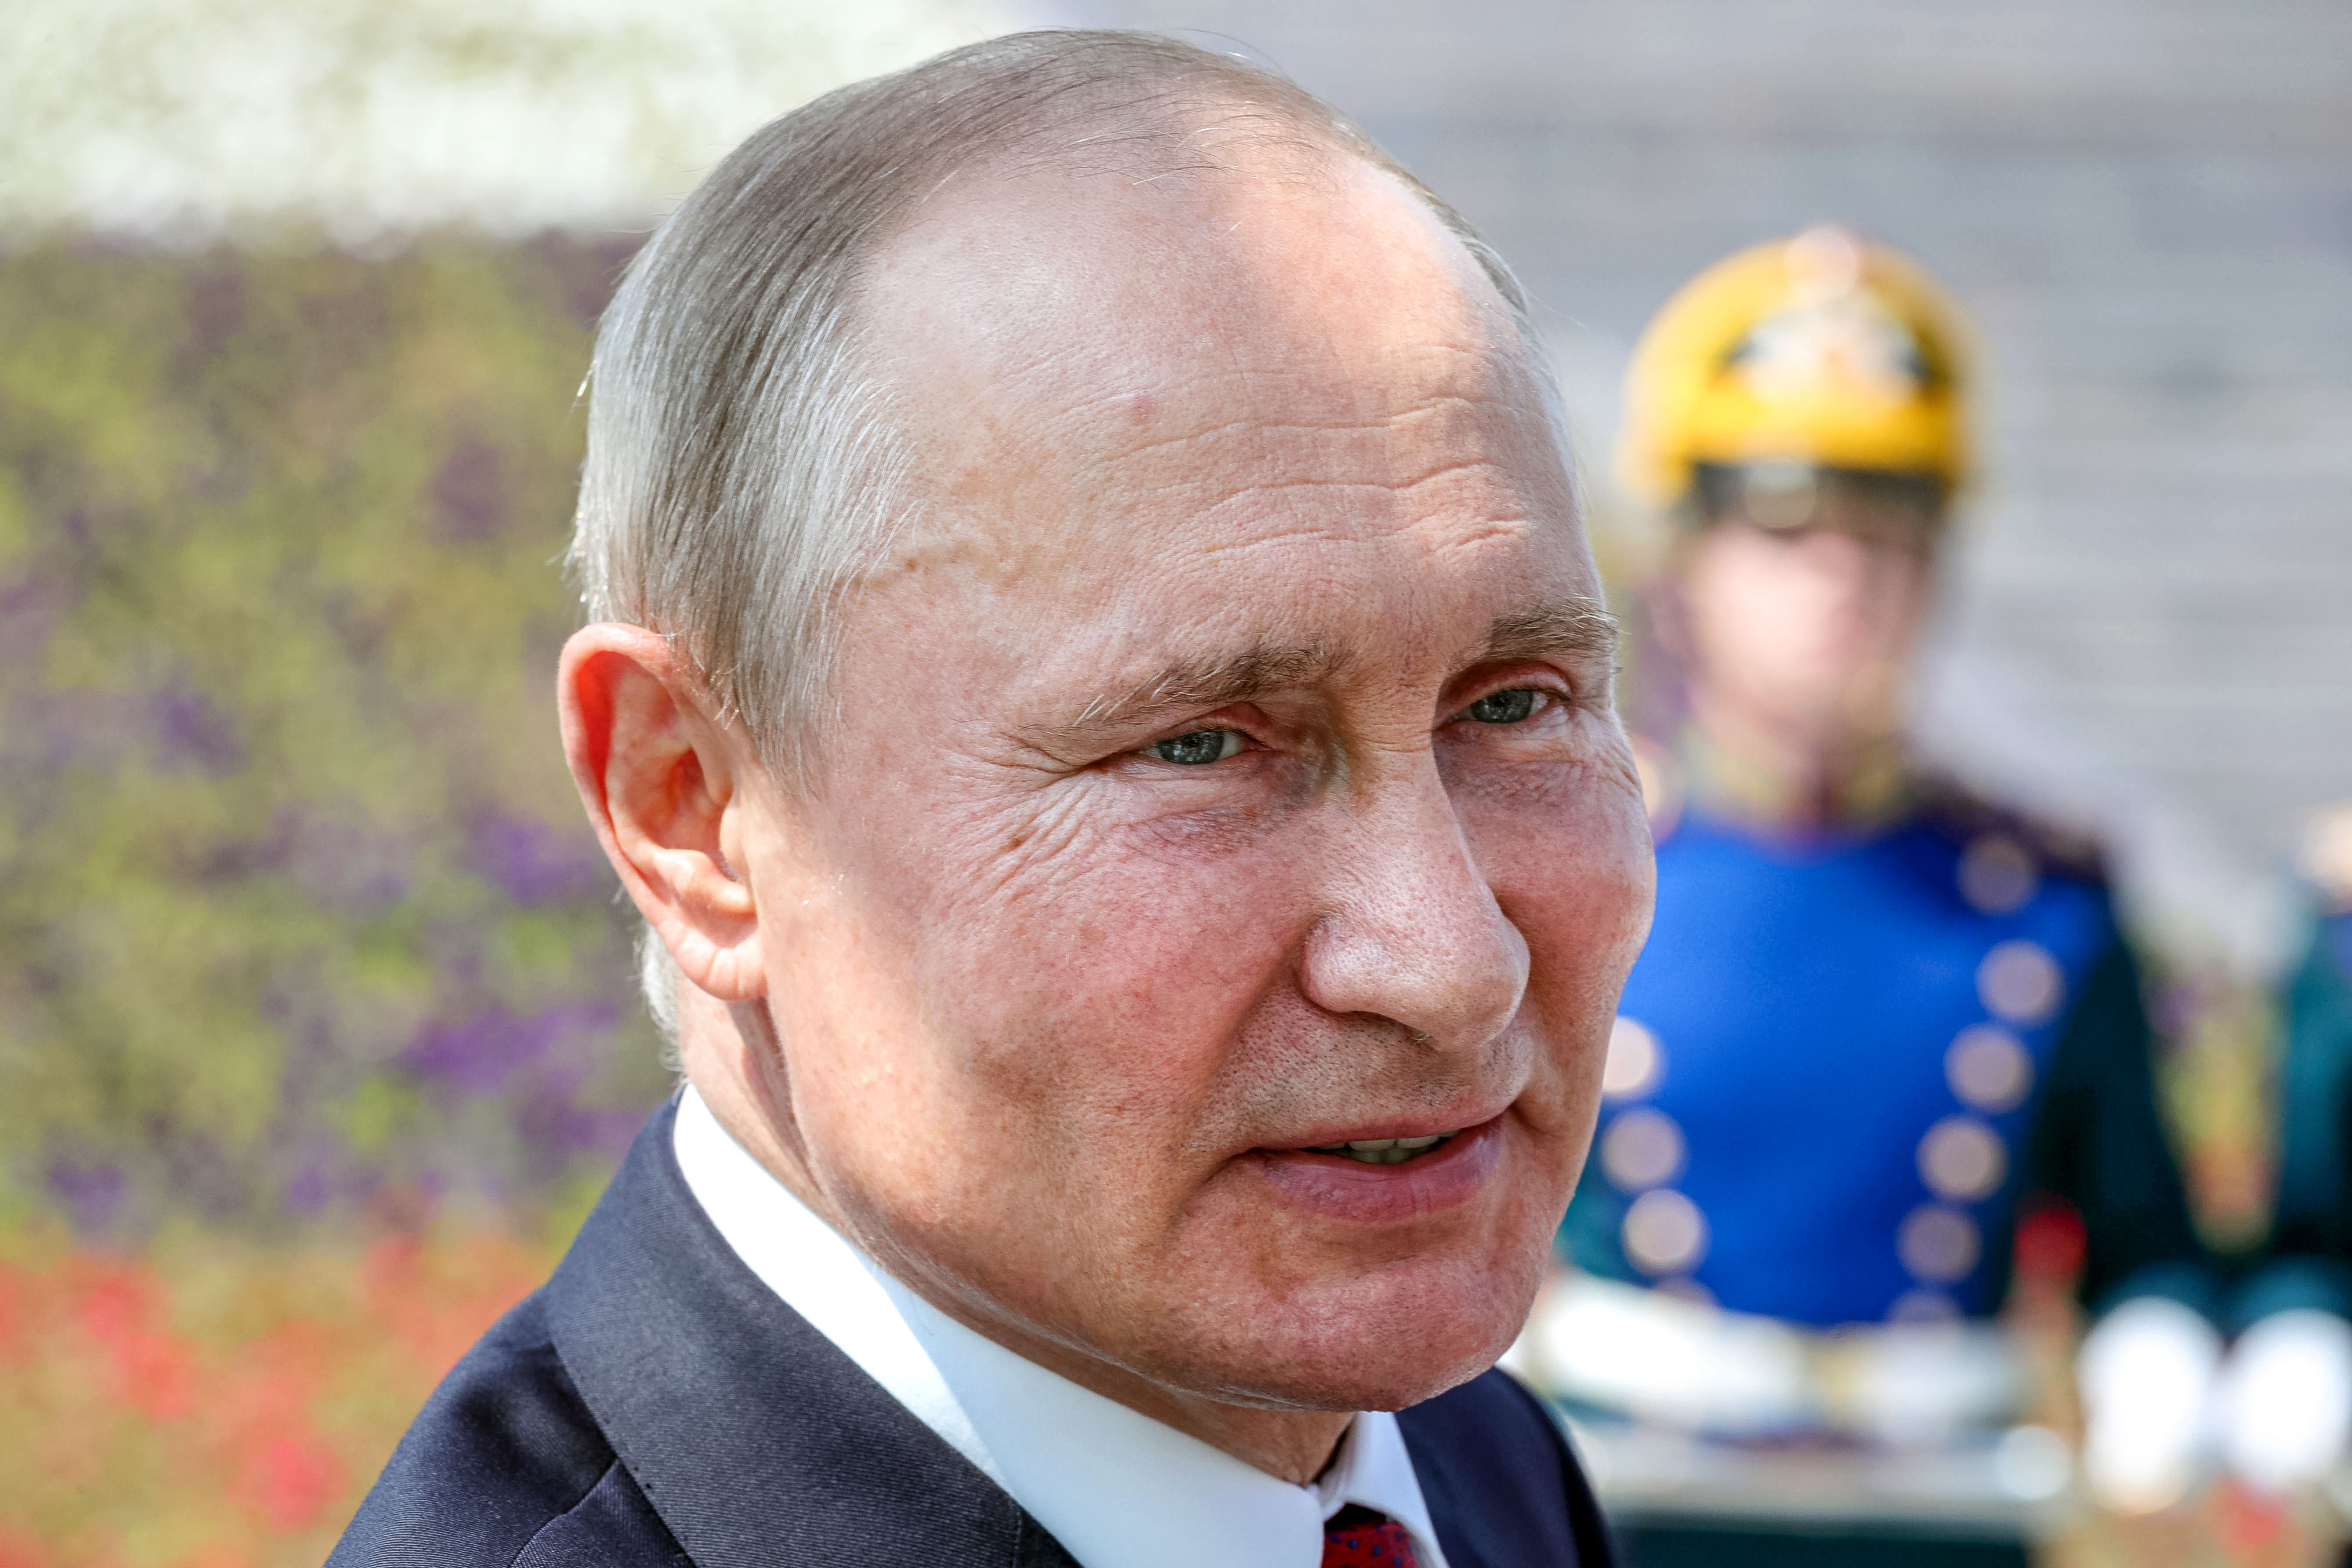 Russian President Vladimir Putin at a ceremony in Moscow on June 12.